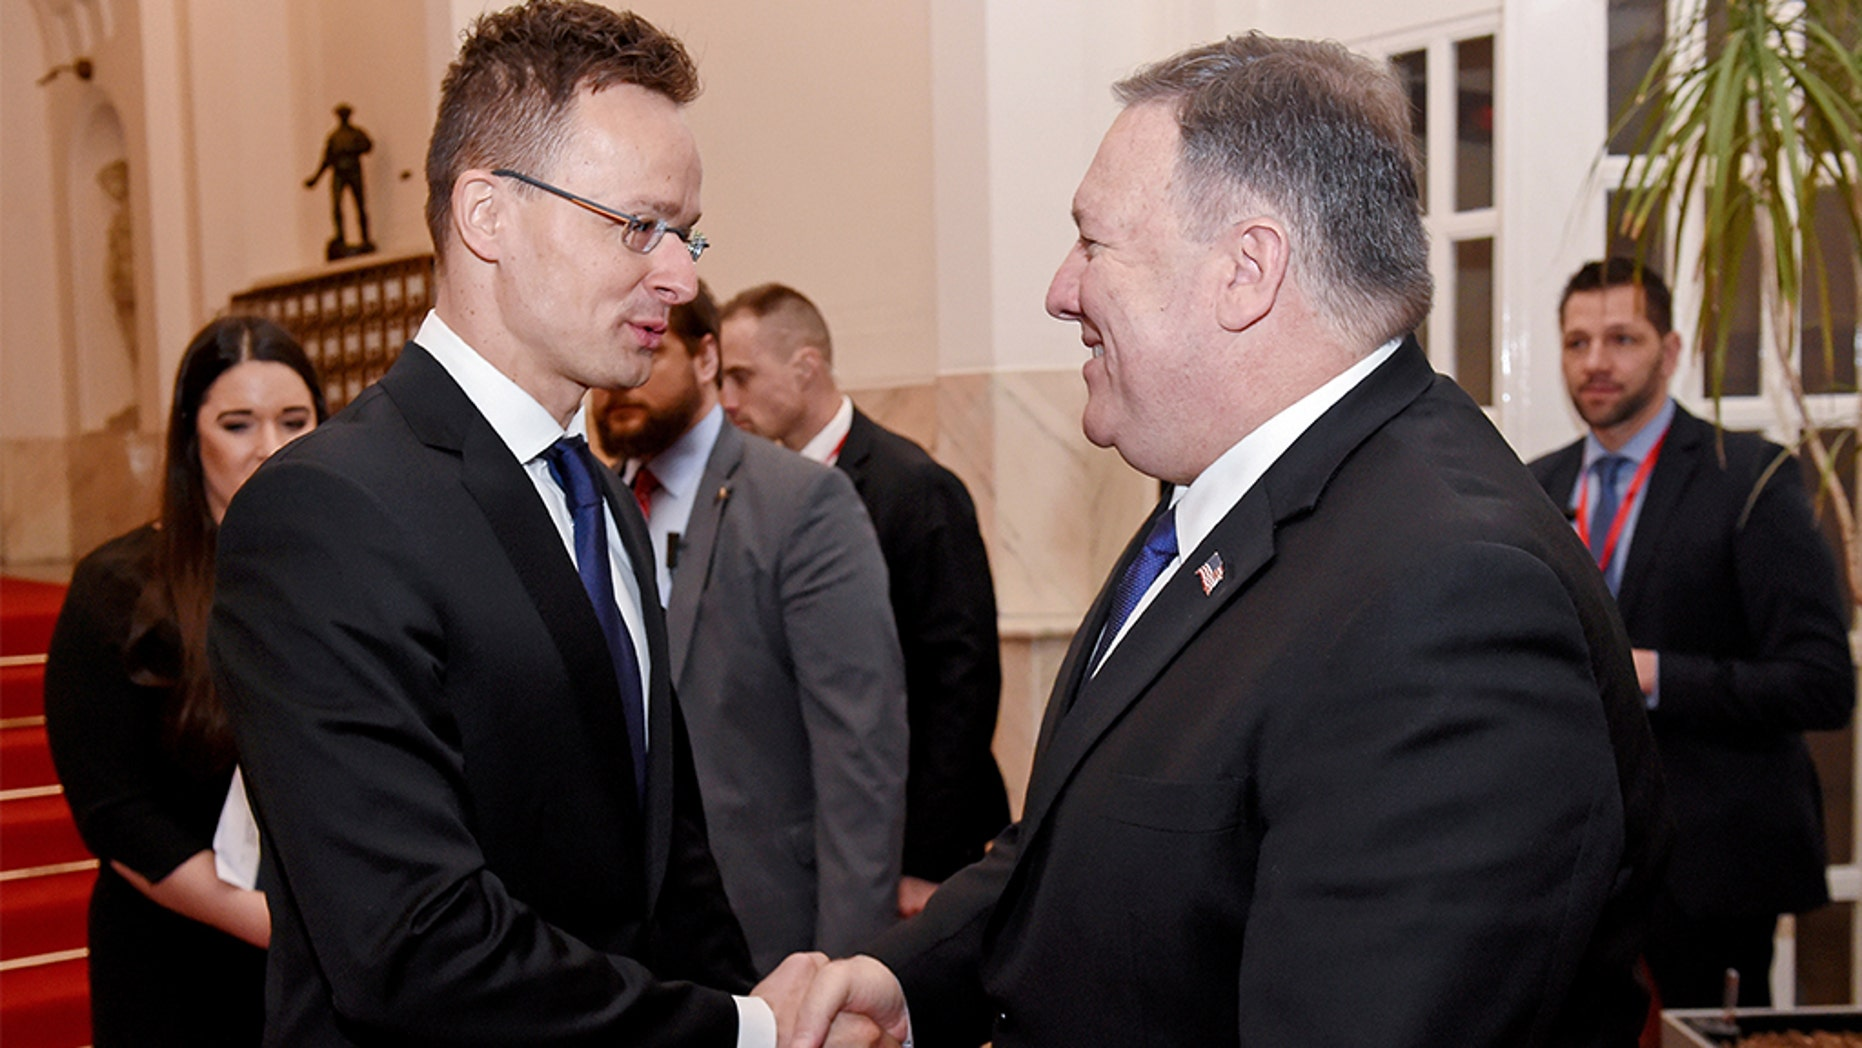 U.S. Secretary of State Mike Pompeo is welcomed by Hungary's Minister of Foreign Affairs and Trade Peter Szijjarto in the ministry building in Budapest, Hungary, February 11, 2019. (Attila Kisbenedek/Pool via Reuters)